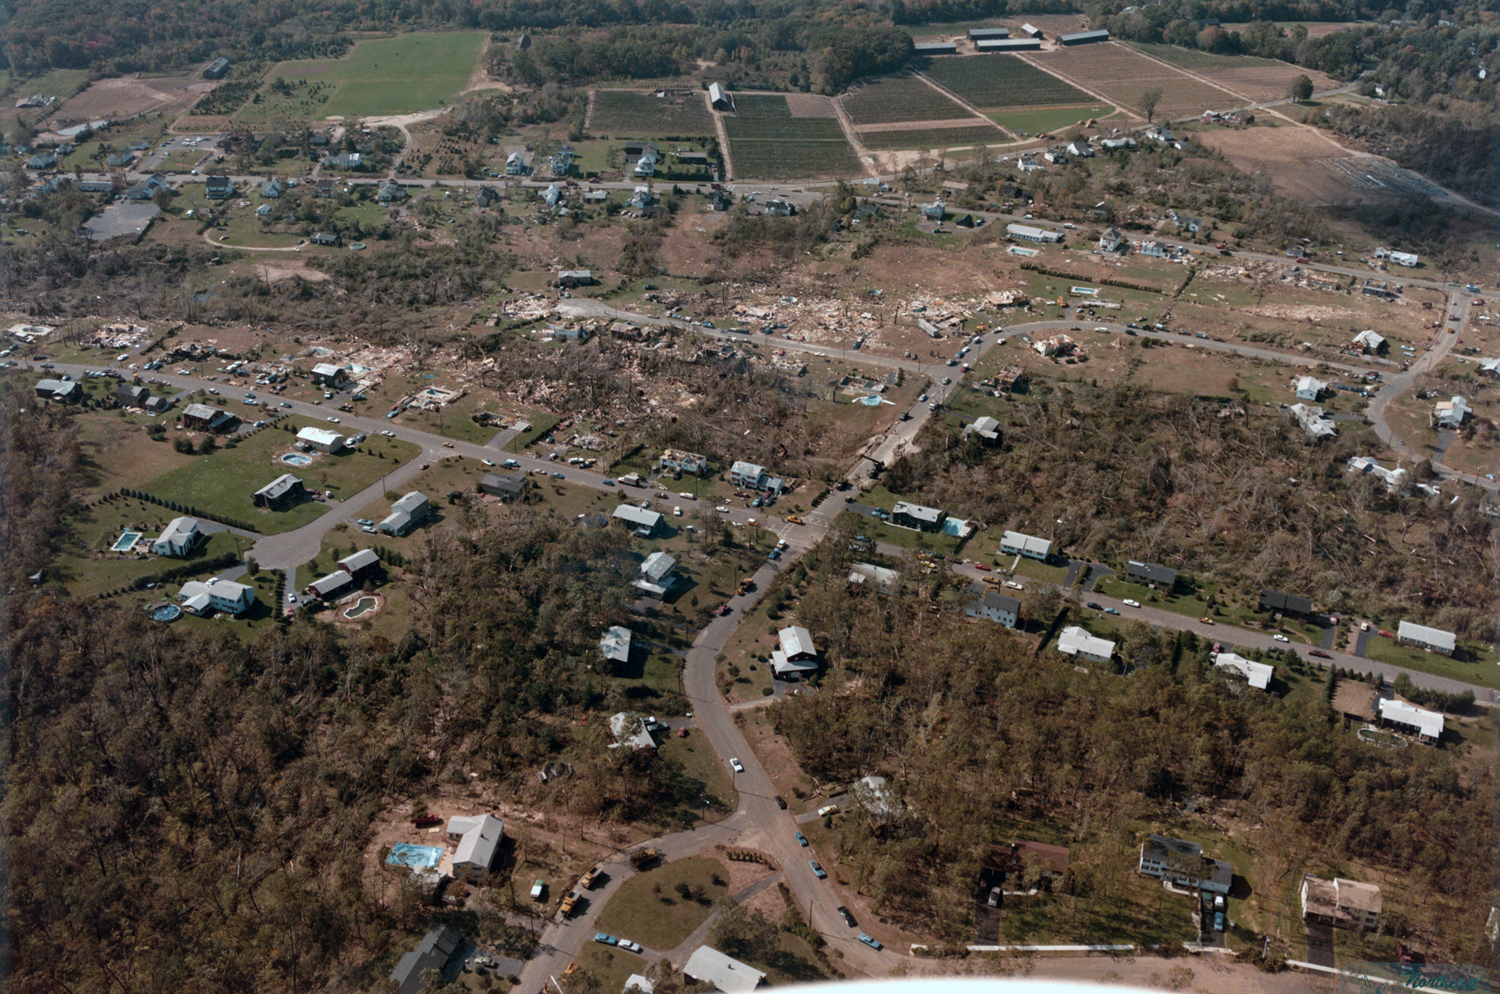 Aerial view of tornado path